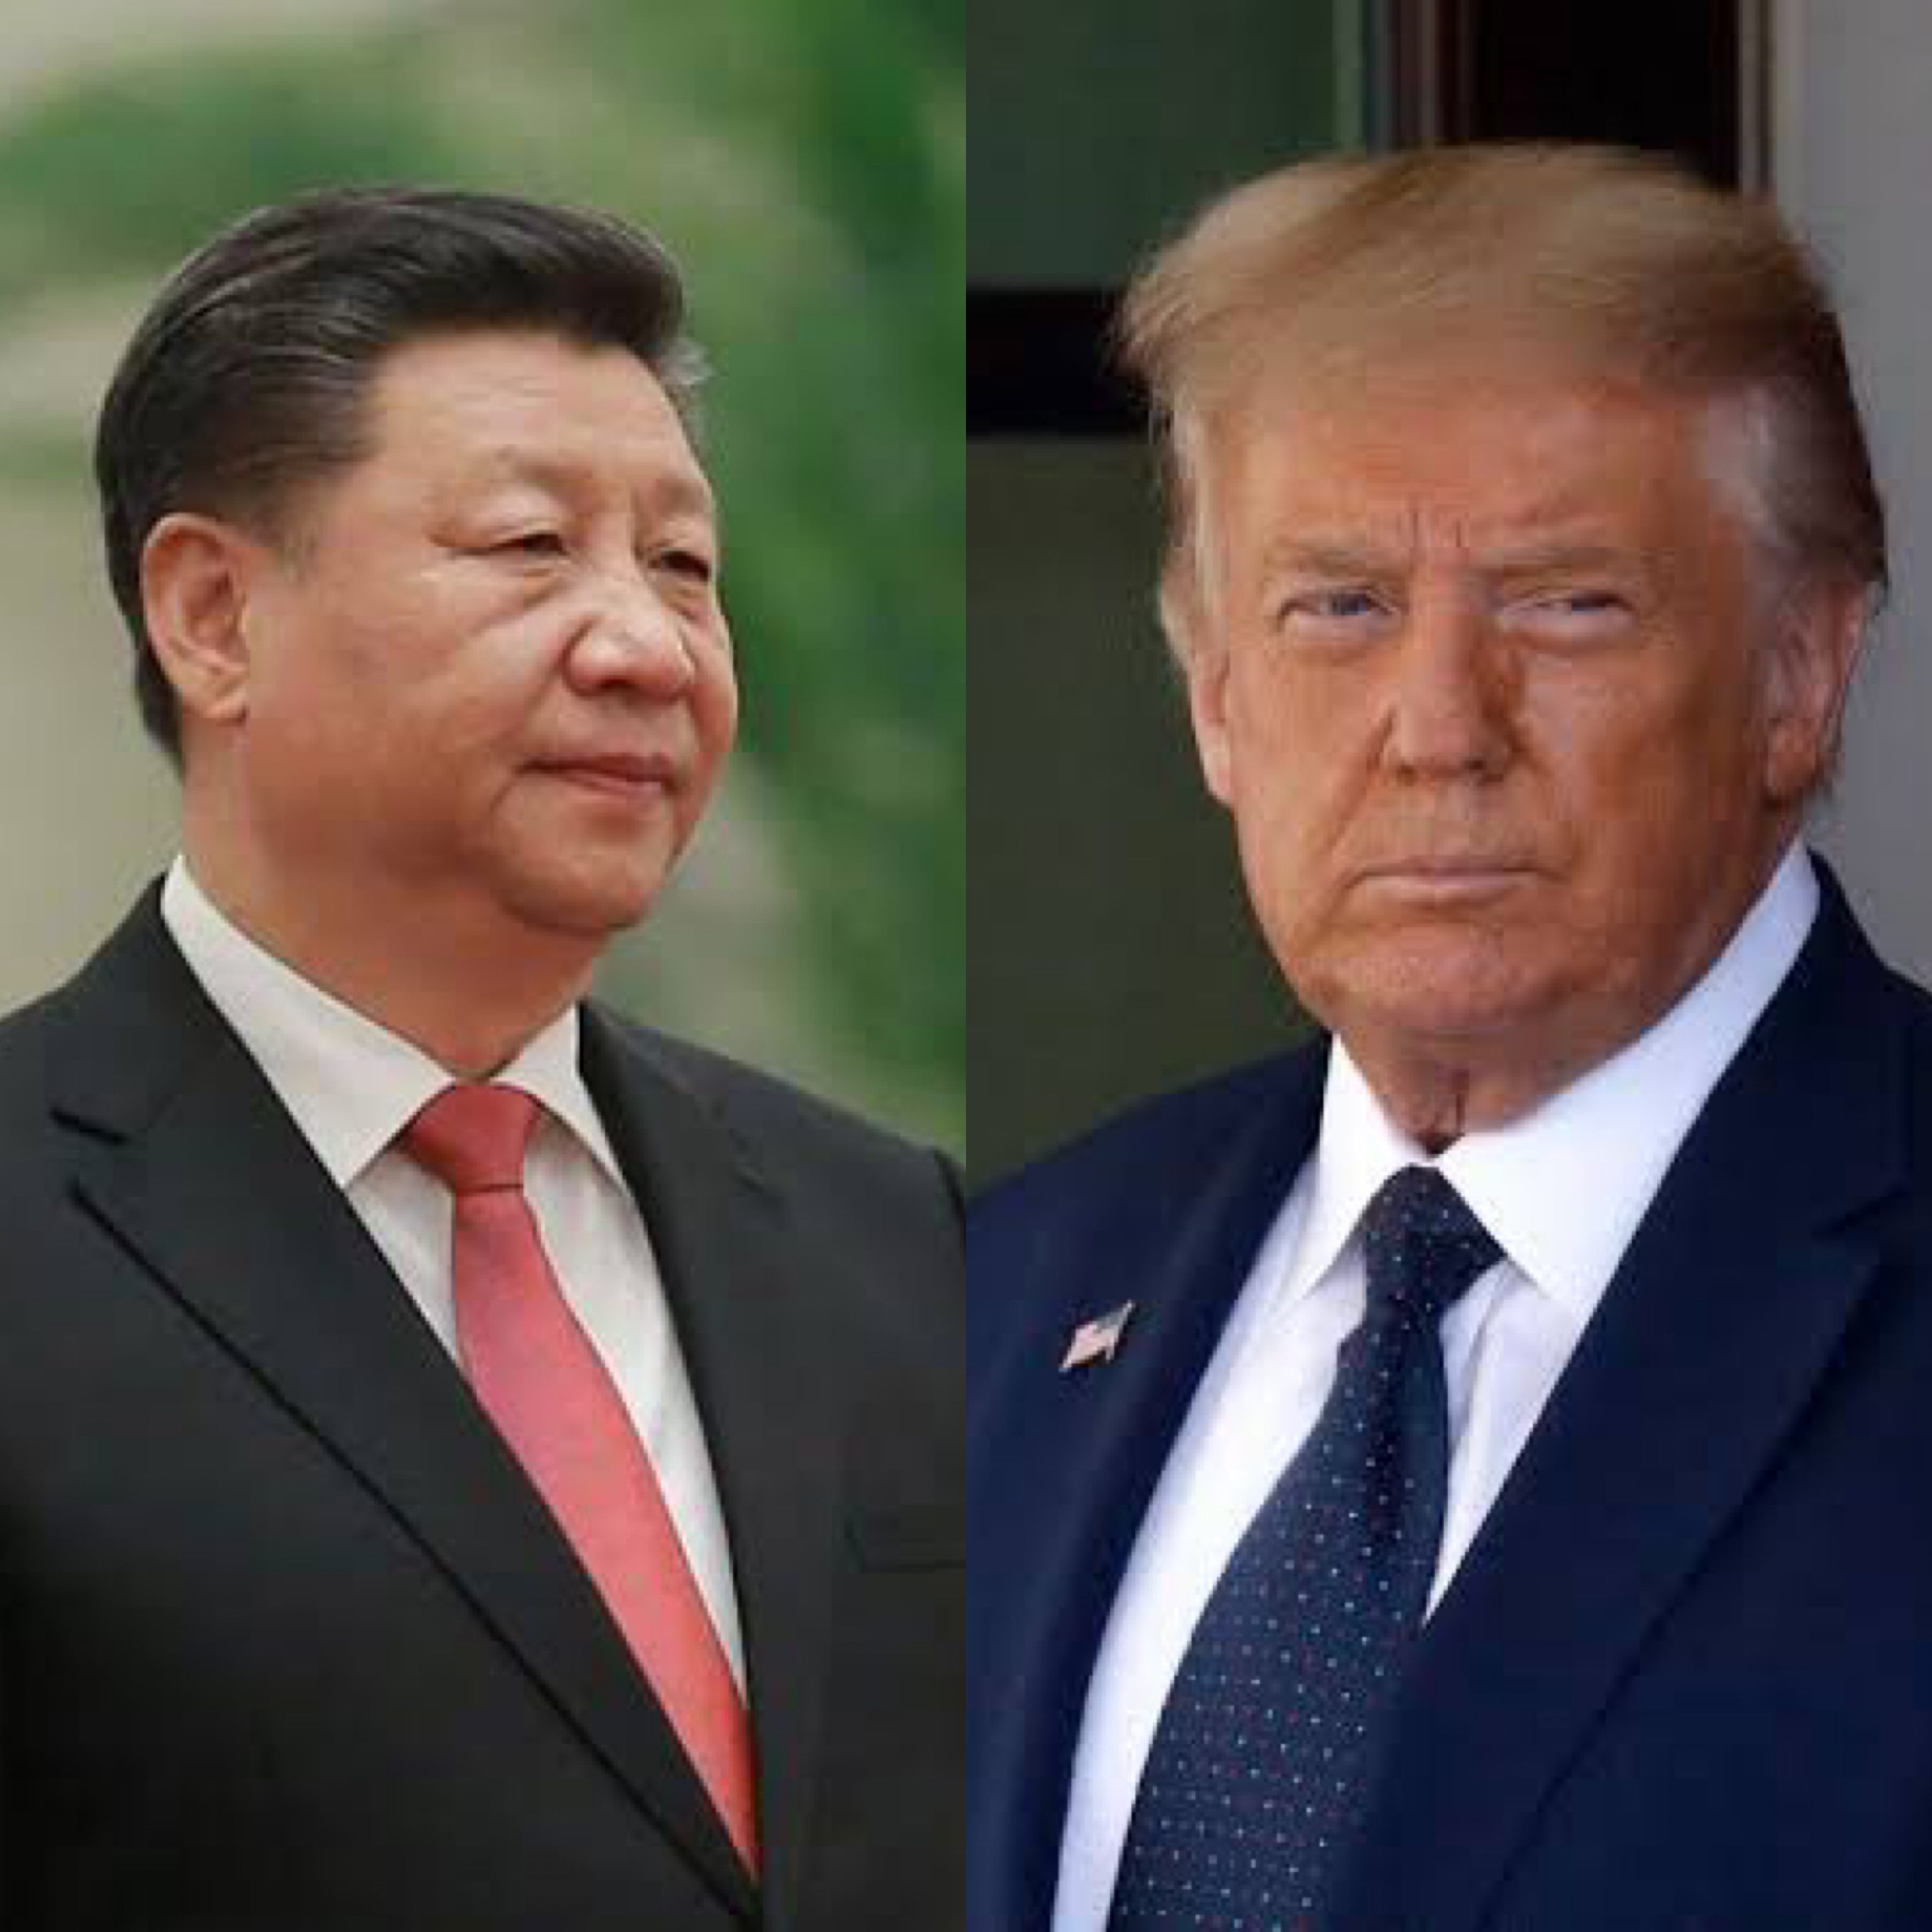 L-R: President of China, Xi Jinping and President of US, Donald Trump